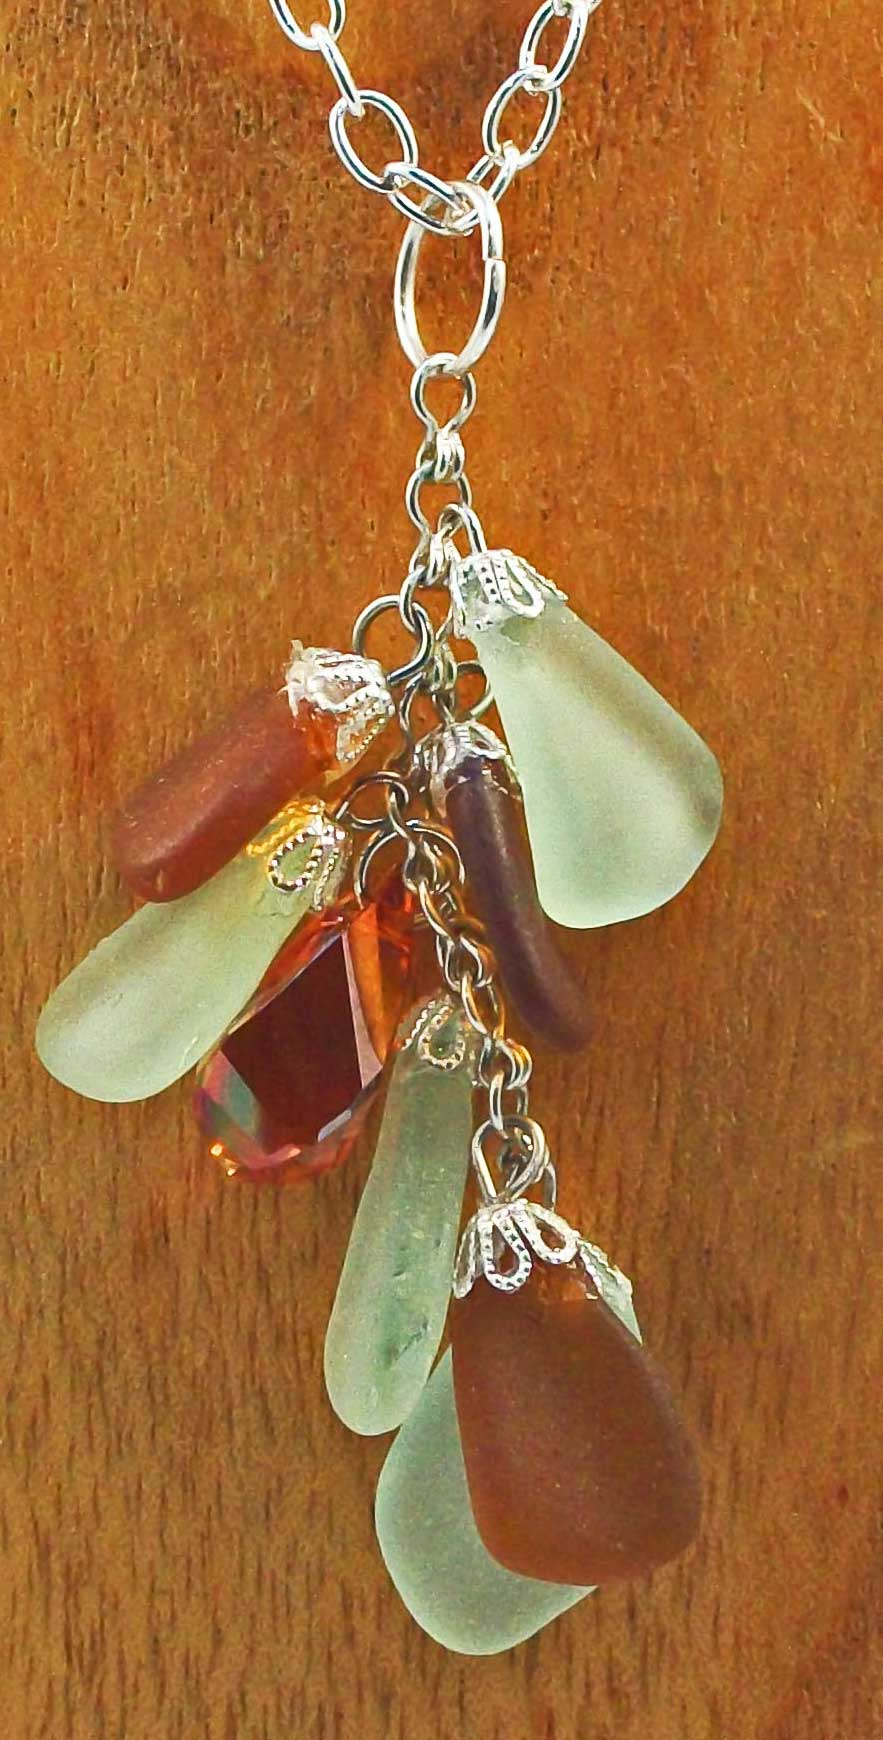 Rody recycled beach glass pendant gallery nine next image mozeypictures Image collections